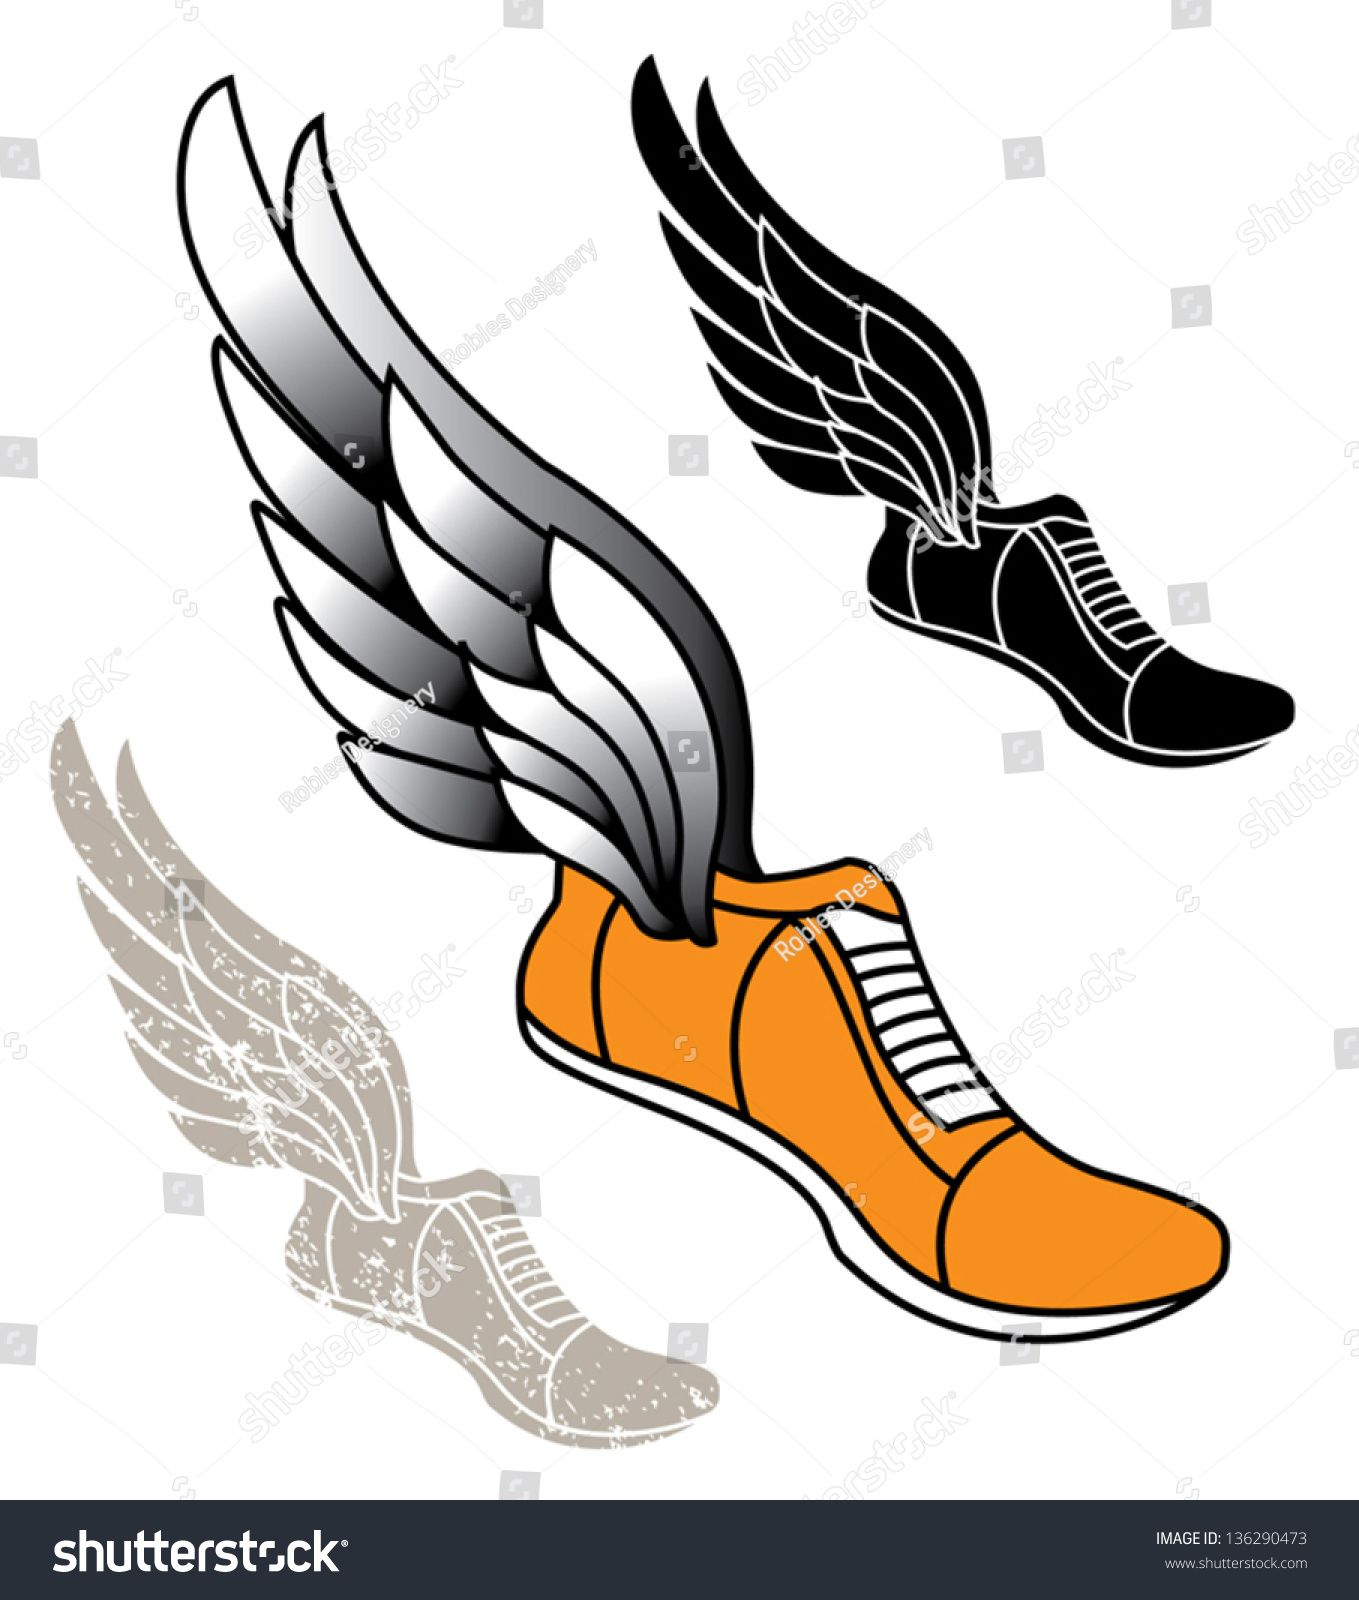 Track athletic sports running shoe logo with wings (With